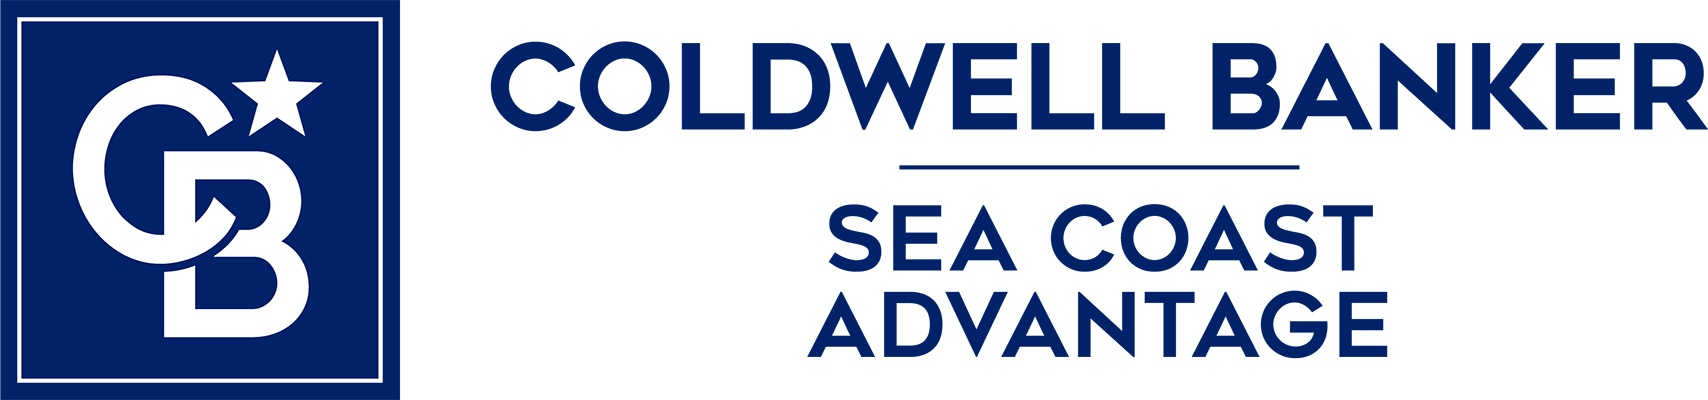 Shannon Lee - Coldwell Banker Sea Coast Advantage Realty